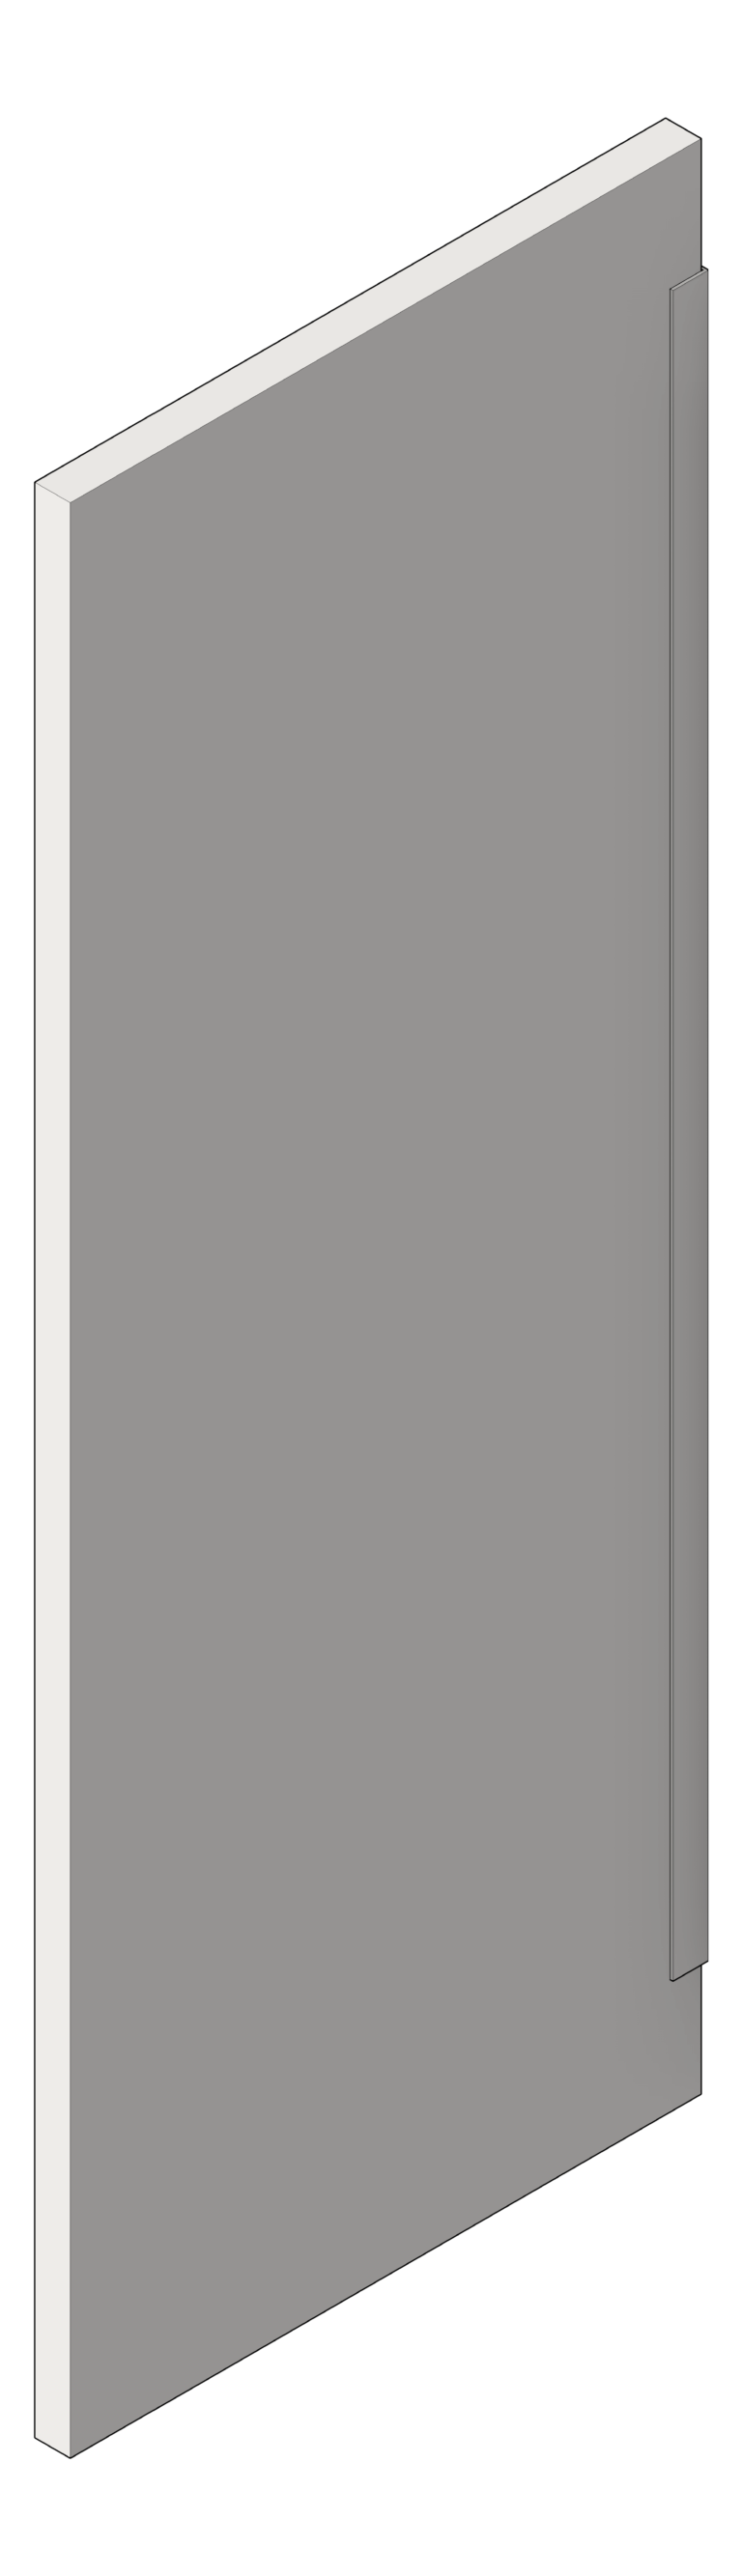 UrinalScreen_WallHung_AccuratePartitions_StainlessSteel_3D Shaded